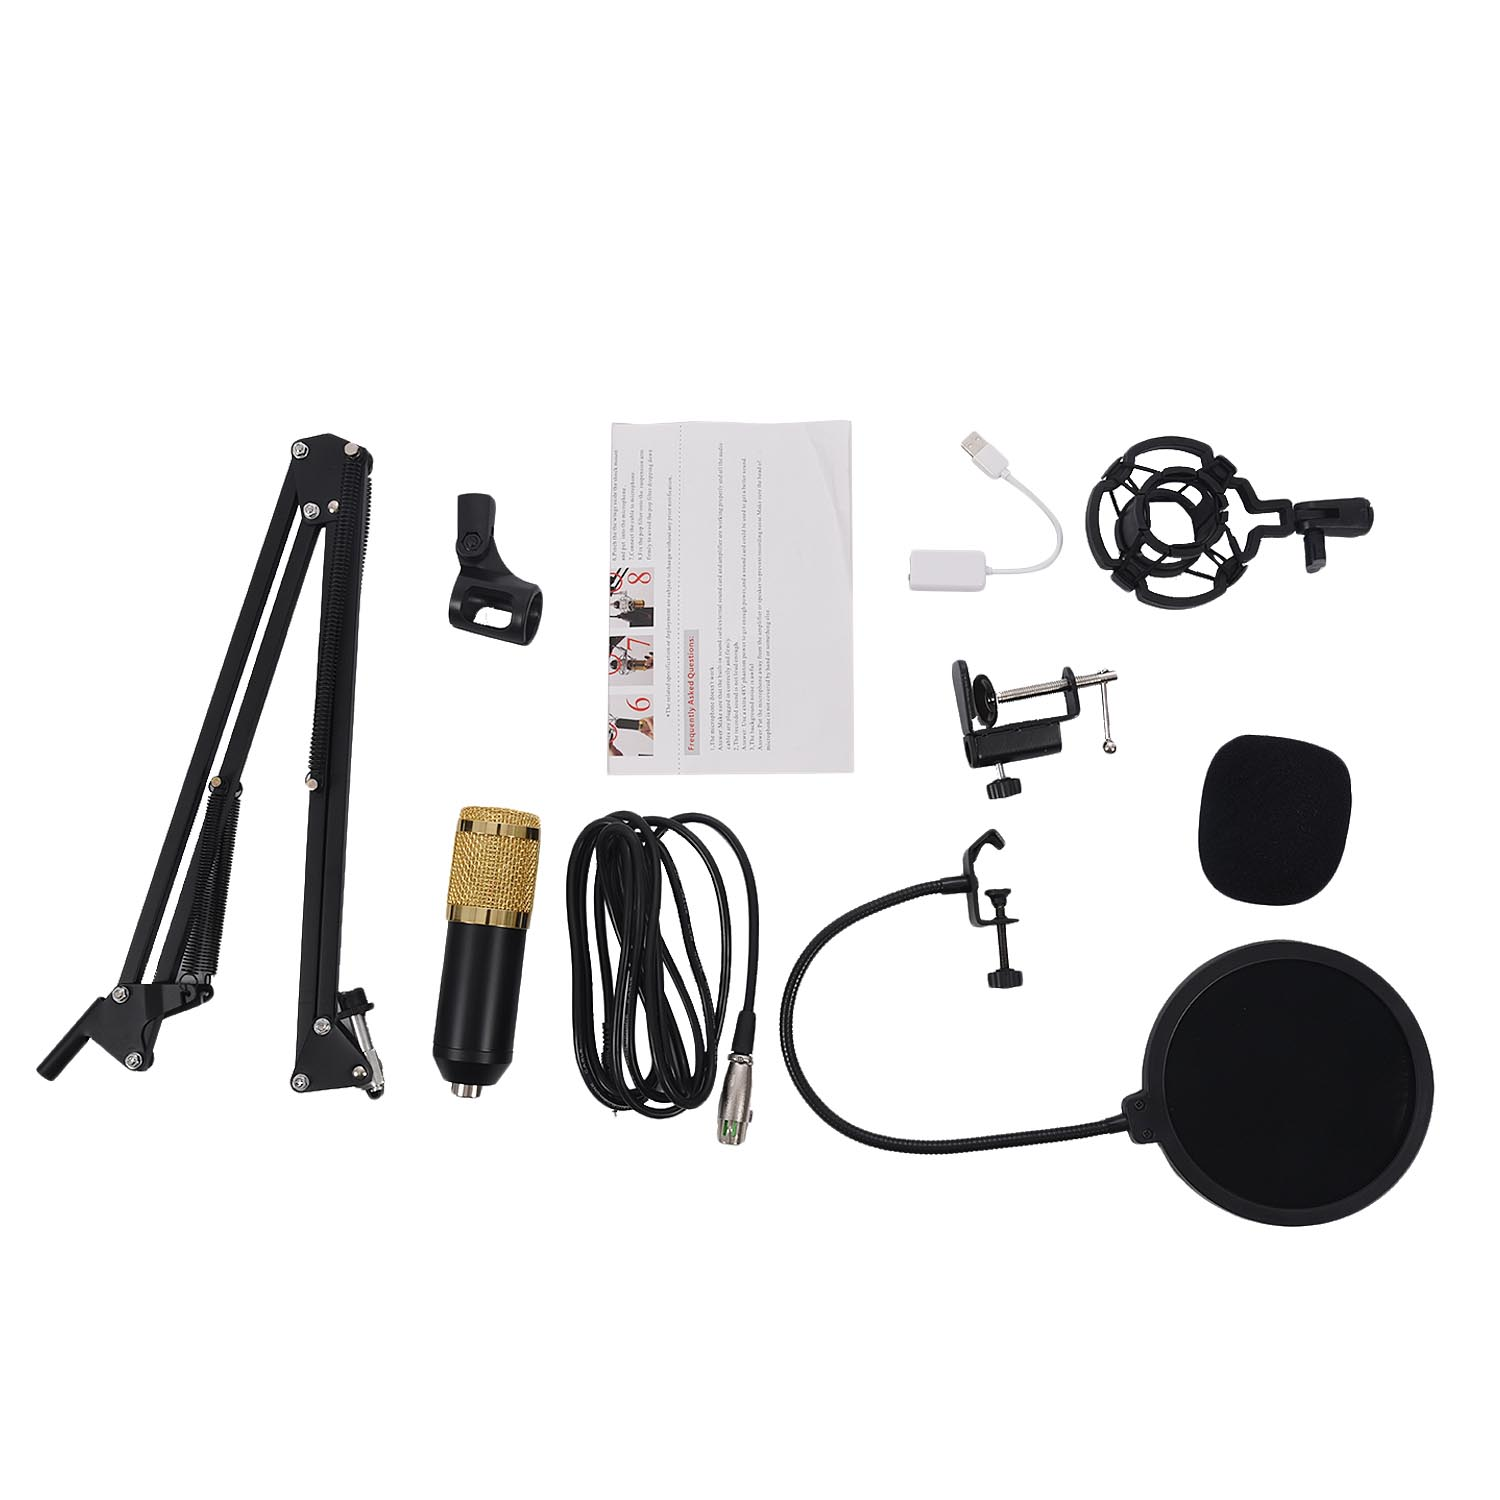 HOT-BM800 uperior professional condenser Microphone Kit Studio Suspension Boom Scissor Arm Sound Card for KTV Karaoke Computer felyby multi function live sound card professional condenser microphone bm800 for computer karaoke network podcast microphone